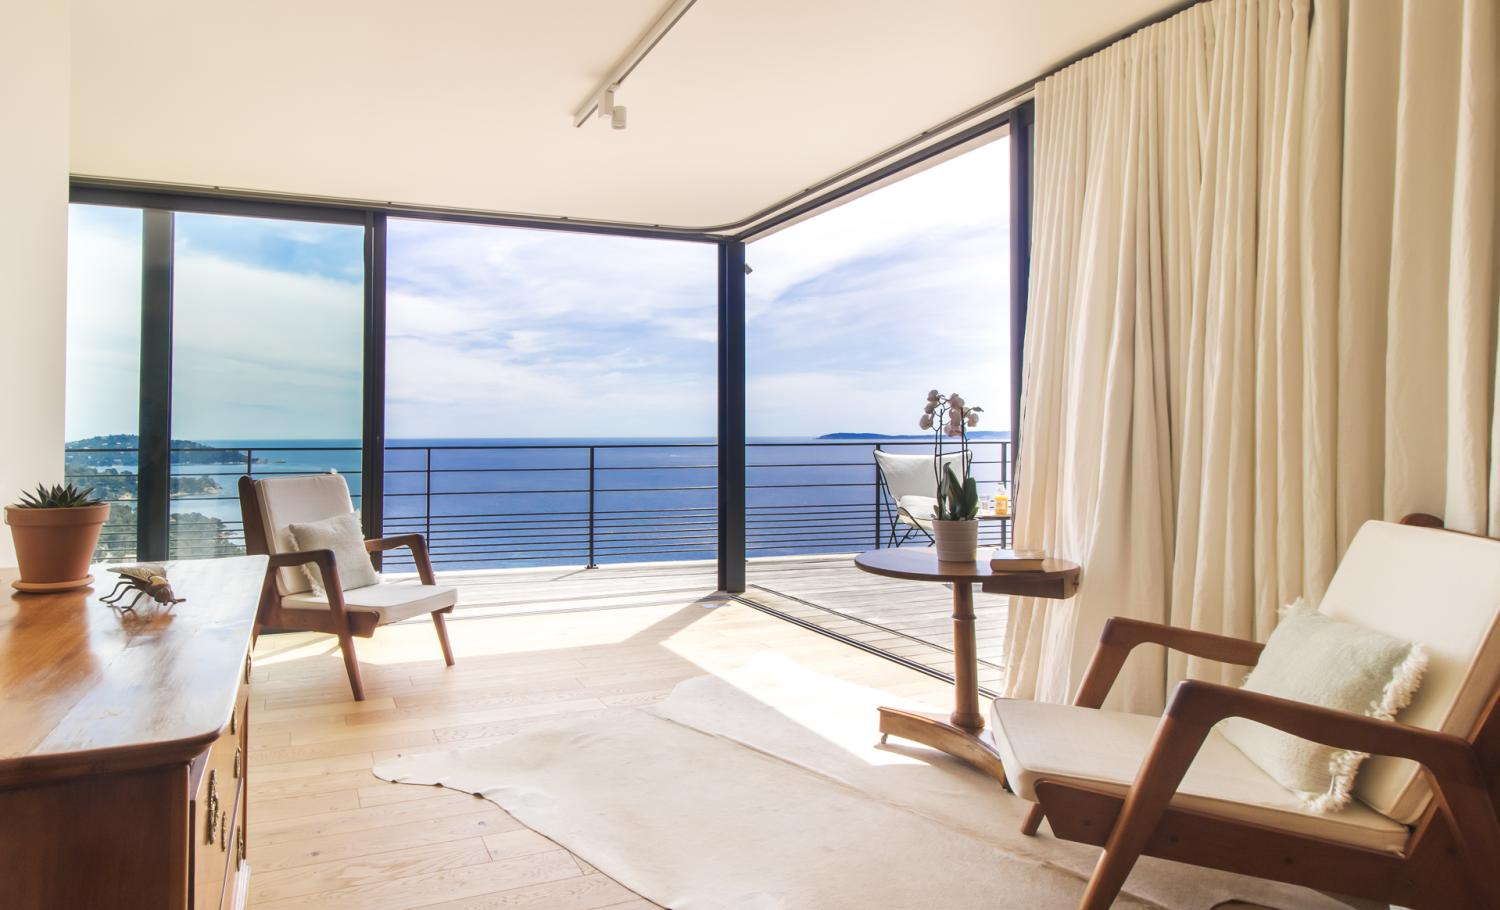 Calming lounge with sea view, Aigue Marine, St Tropez Var, Cavaliere.